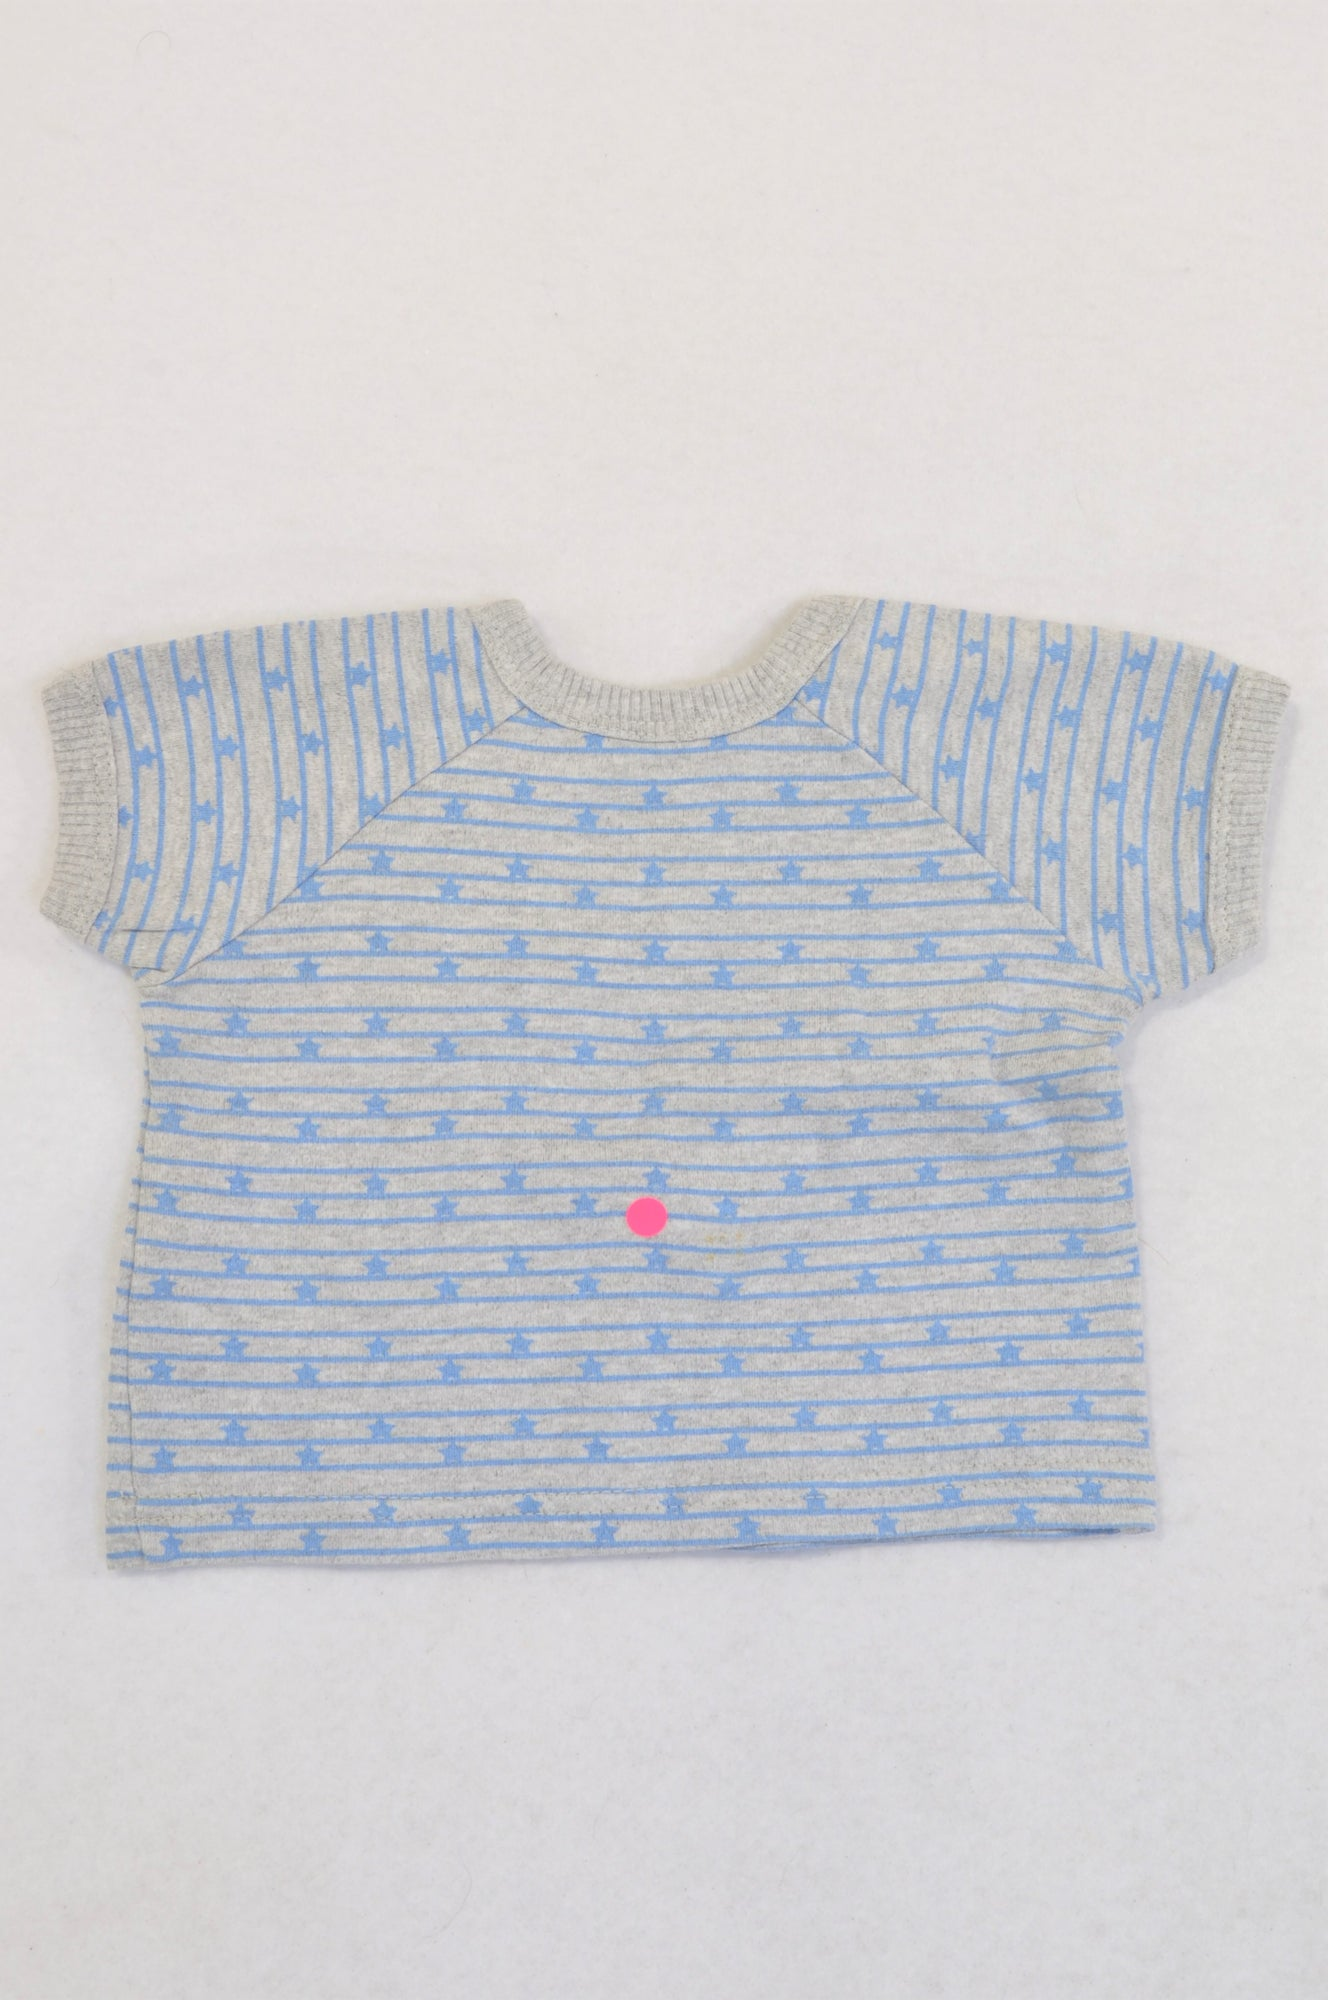 Woolworths Grey & Blue Stripe Love Cuddles T-shirt Boys 0-3 months